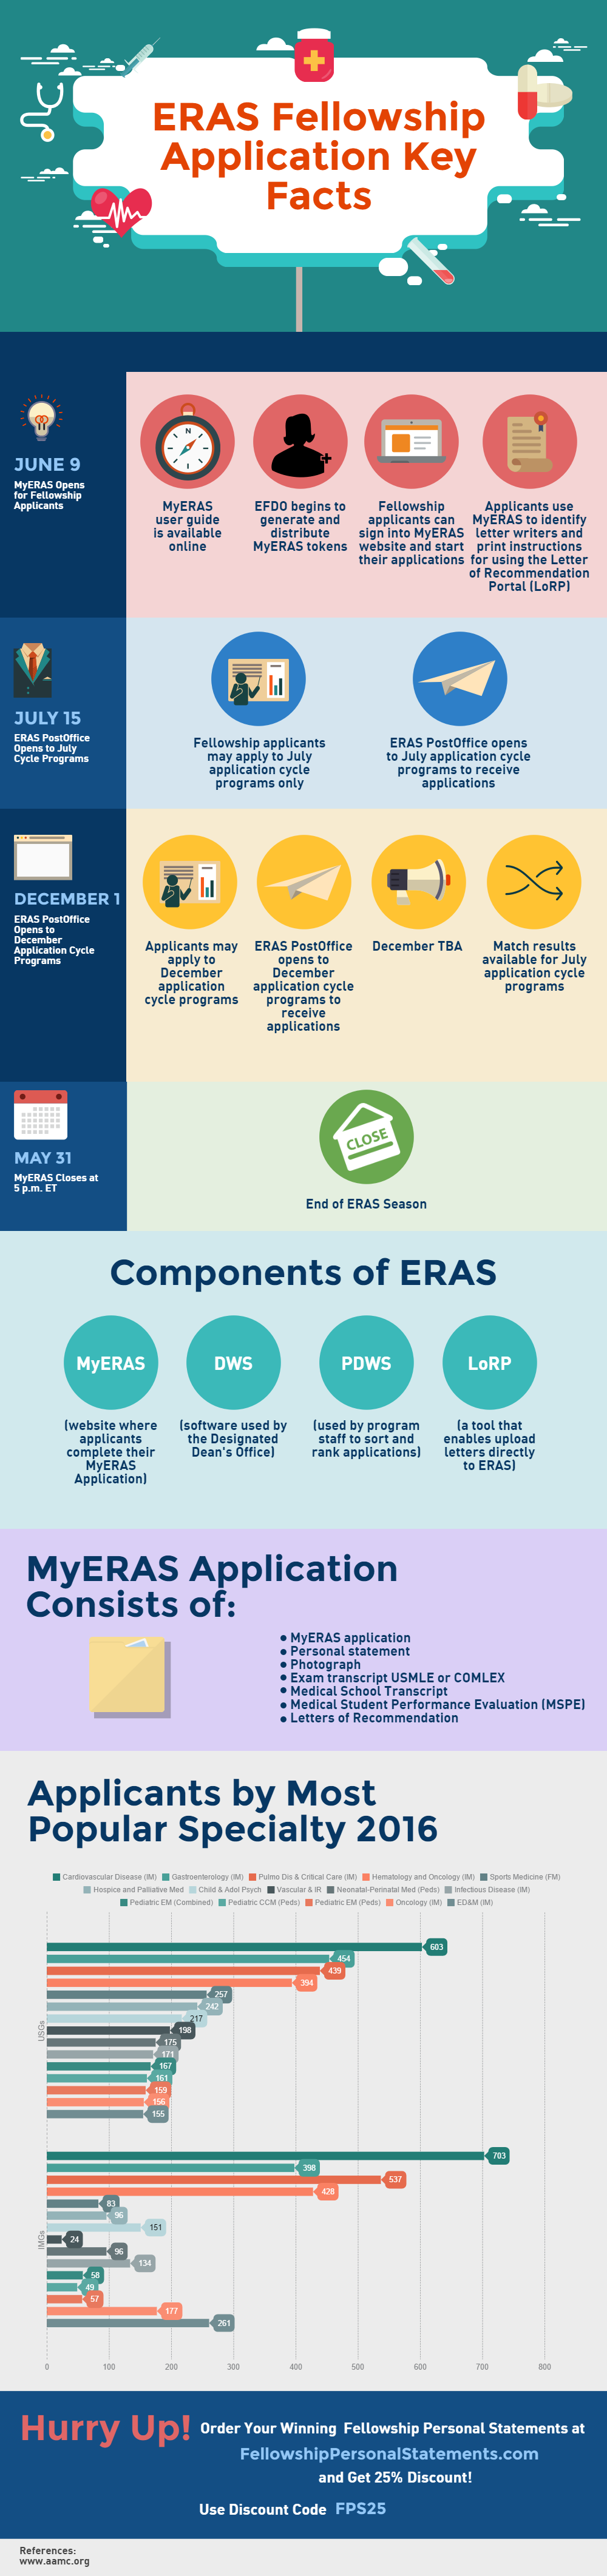 ERAS Fellowship Application